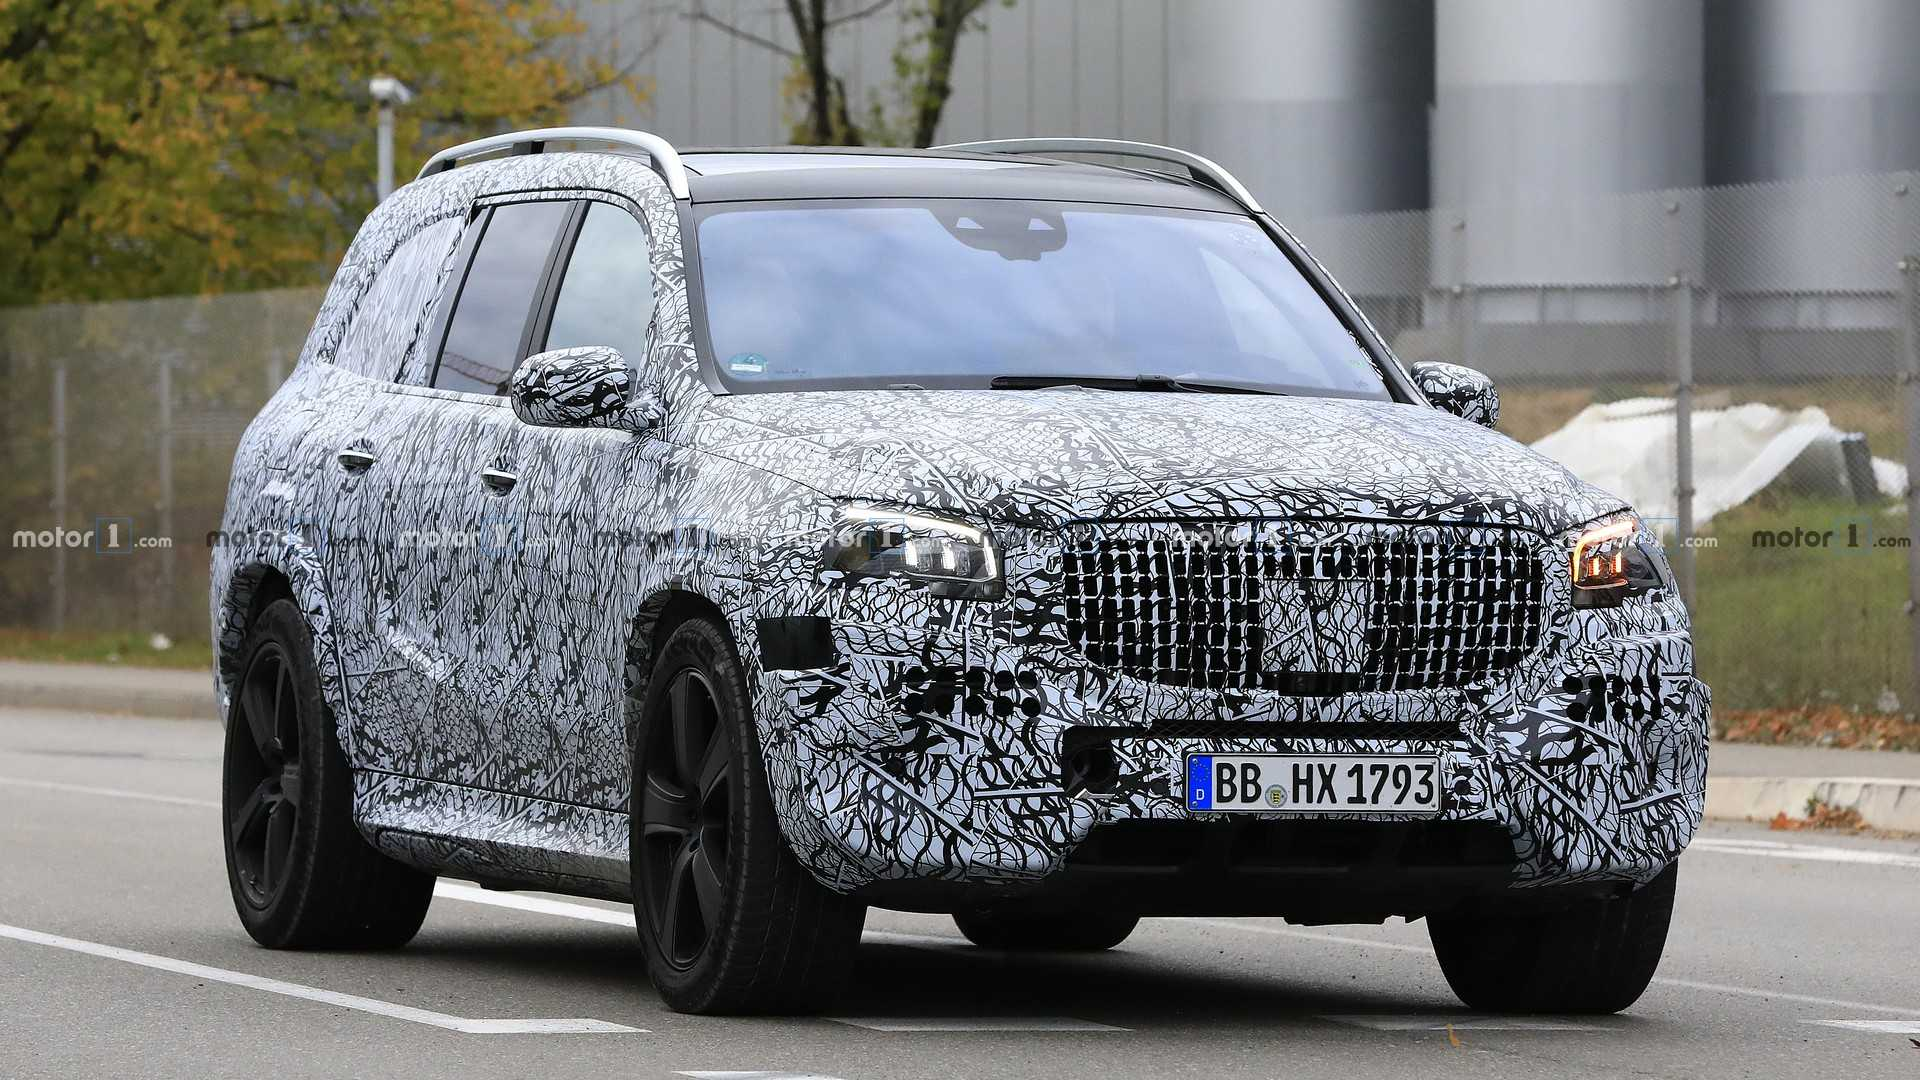 Mercedes Gls 600 Gls 680 S 680 Trademarks Likely For Maybach